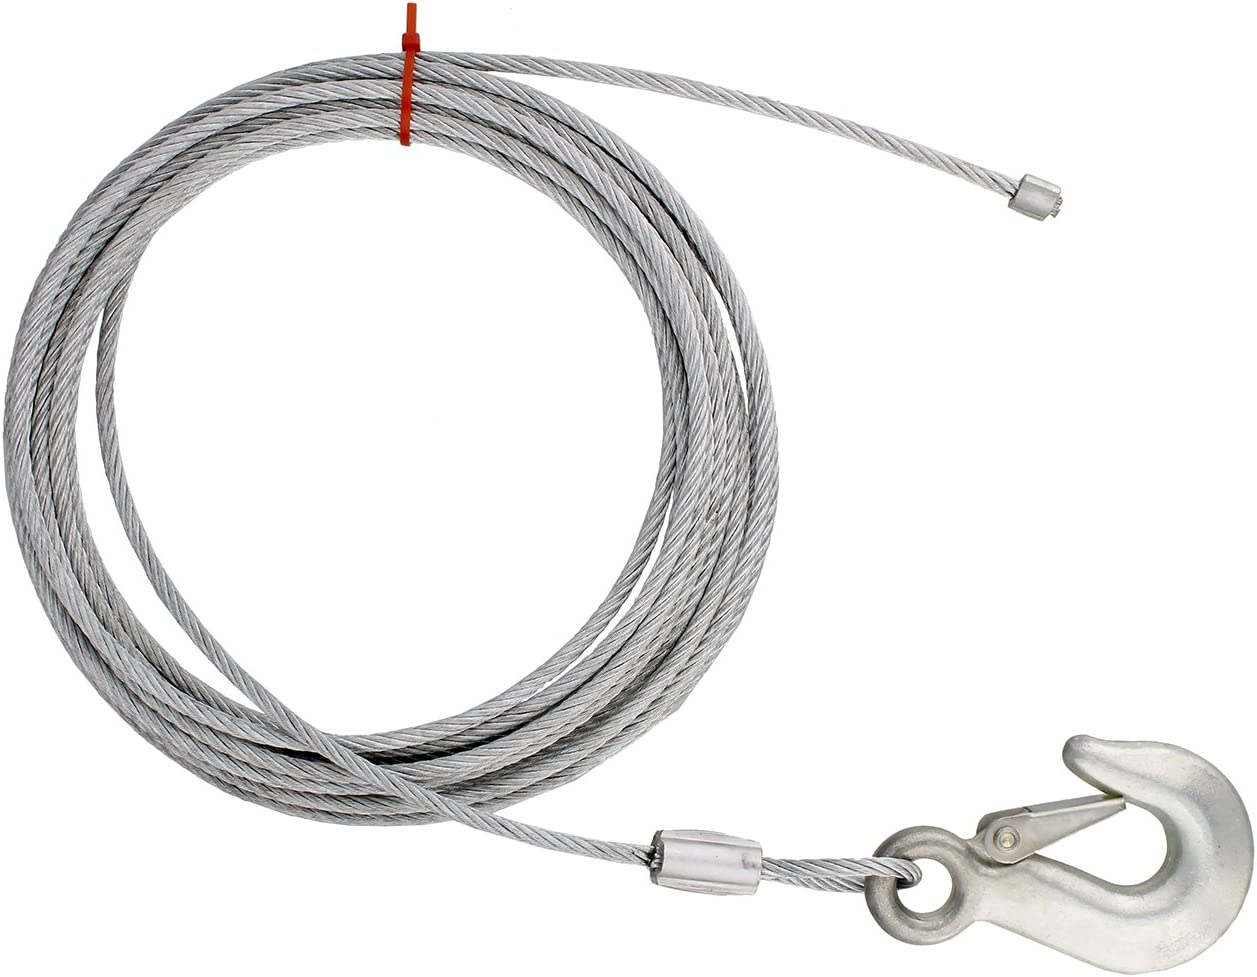 ABN Cargo Tow Trailer Tie Down Strap Cable with Hook and Winch Mount 25ft x 3//16in ATV UTV Boat Tiedown